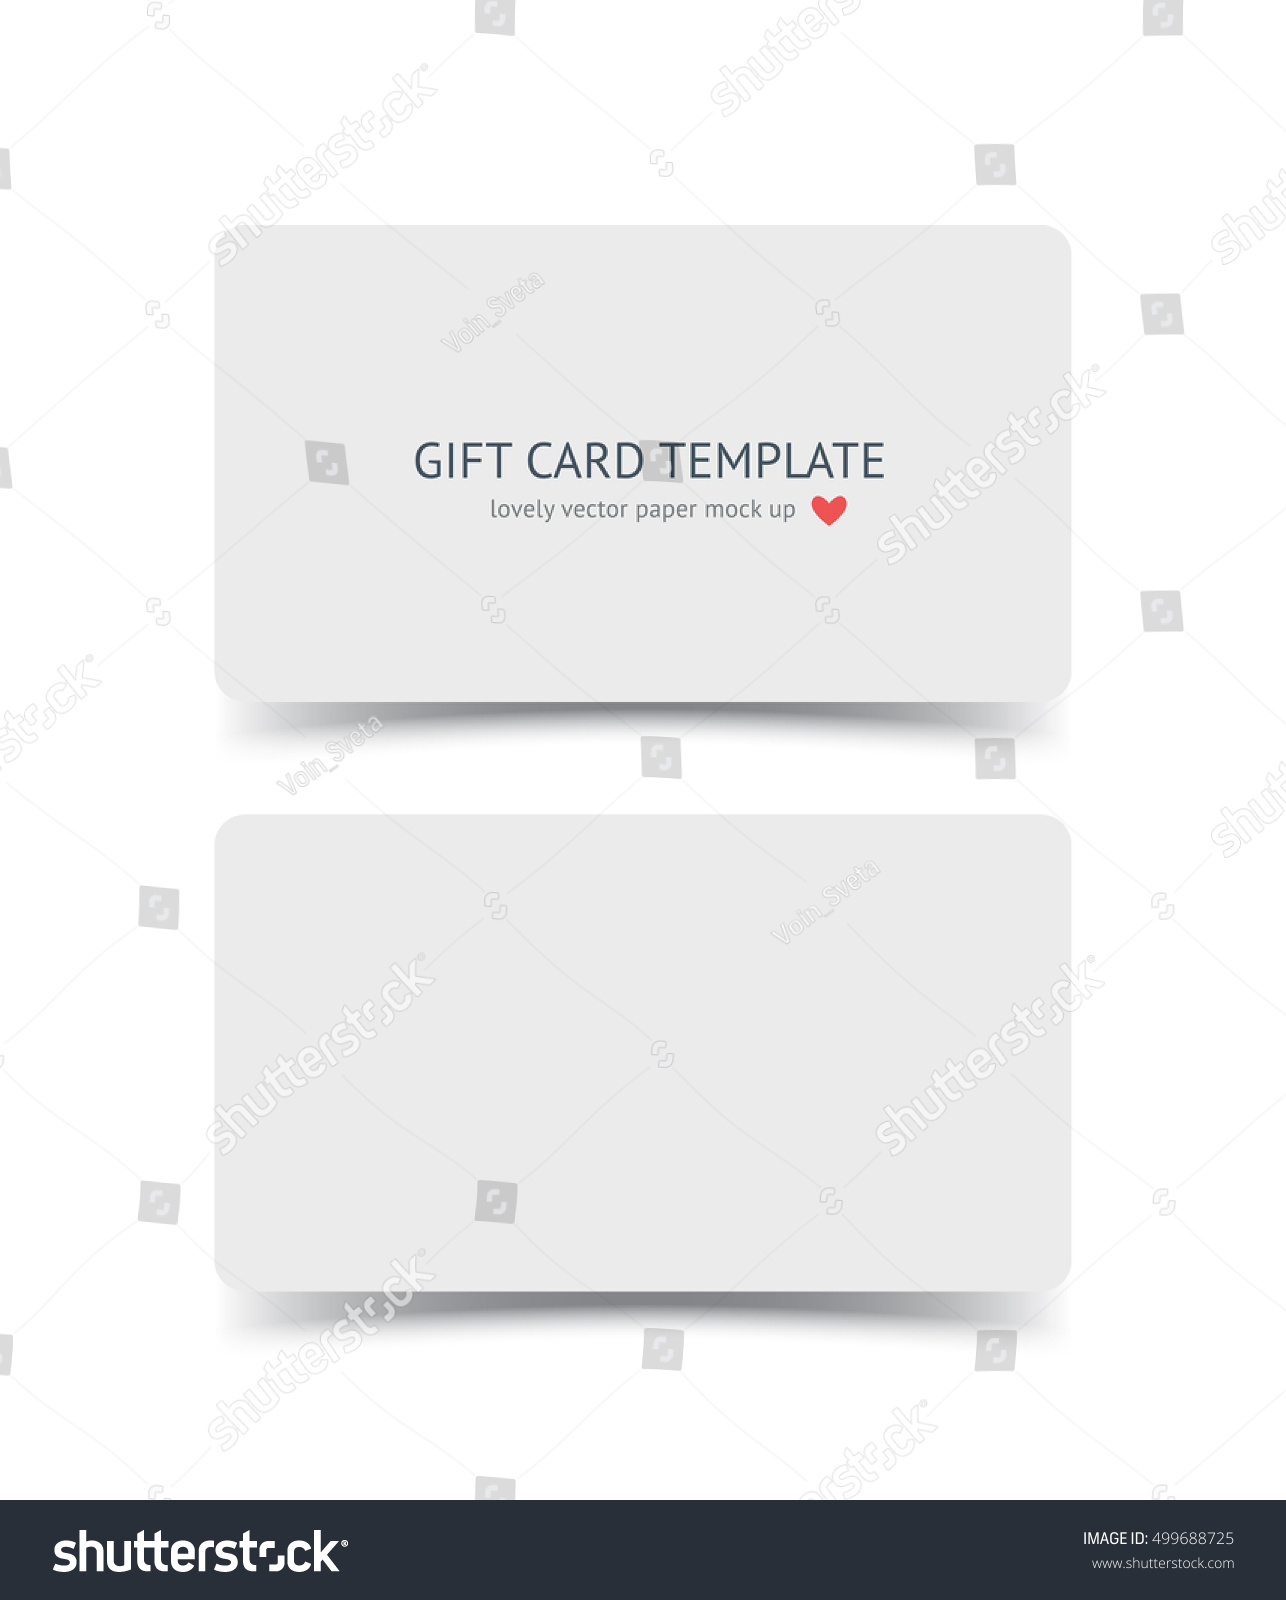 Business card rounded corners images free business cards business card template mock round corners stock vector 499688725 business card template mock up with round magicingreecefo Image collections